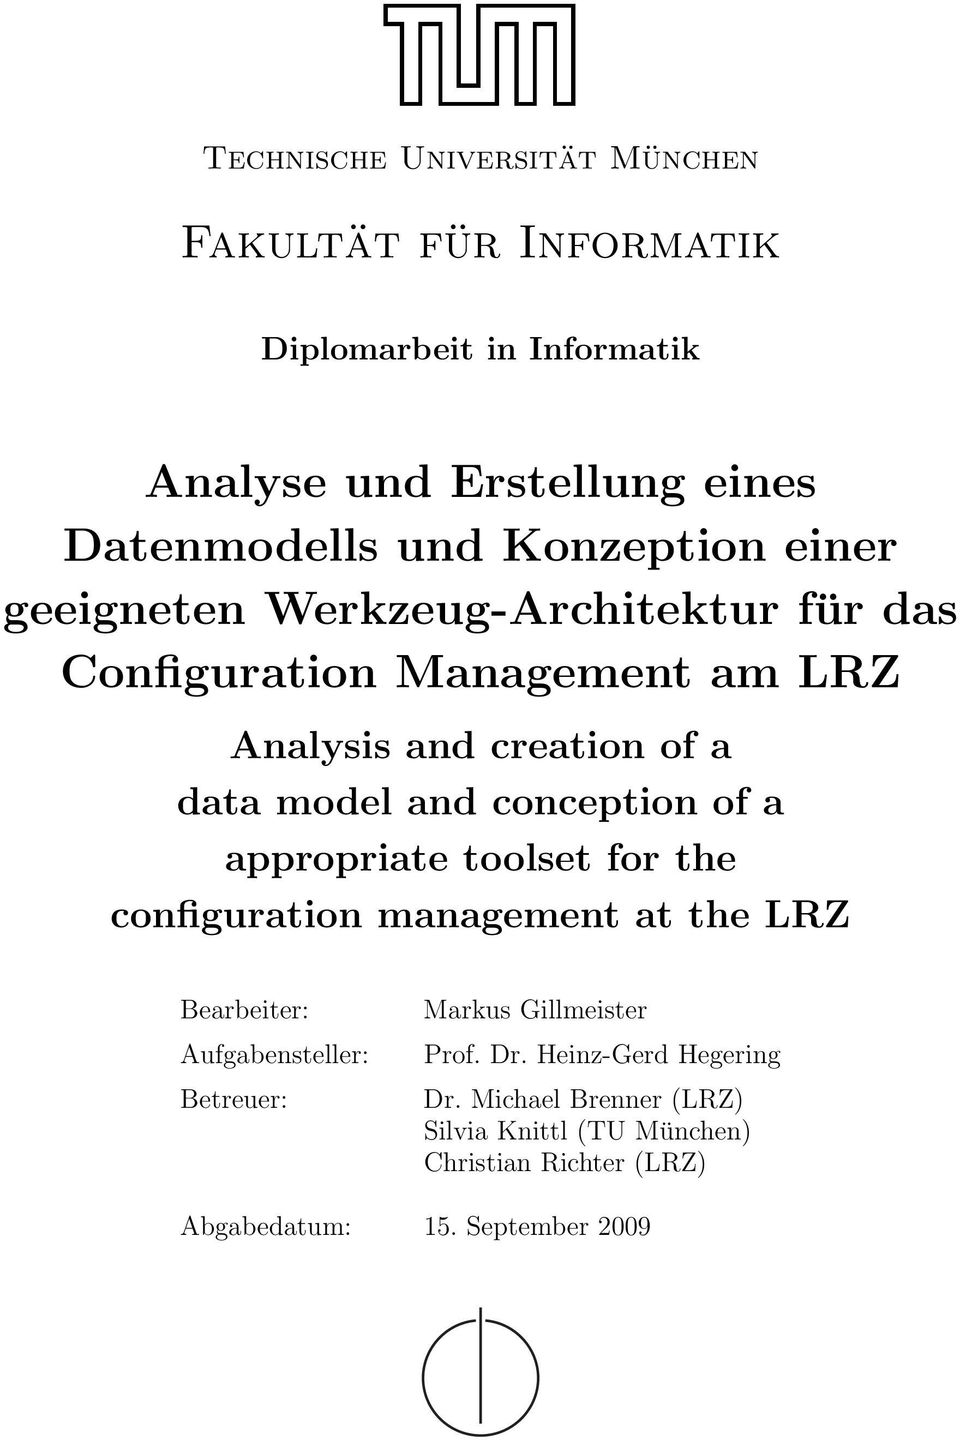 conception of a appropriate toolset for the configuration management at the LRZ Bearbeiter: Aufgabensteller: Betreuer: Markus